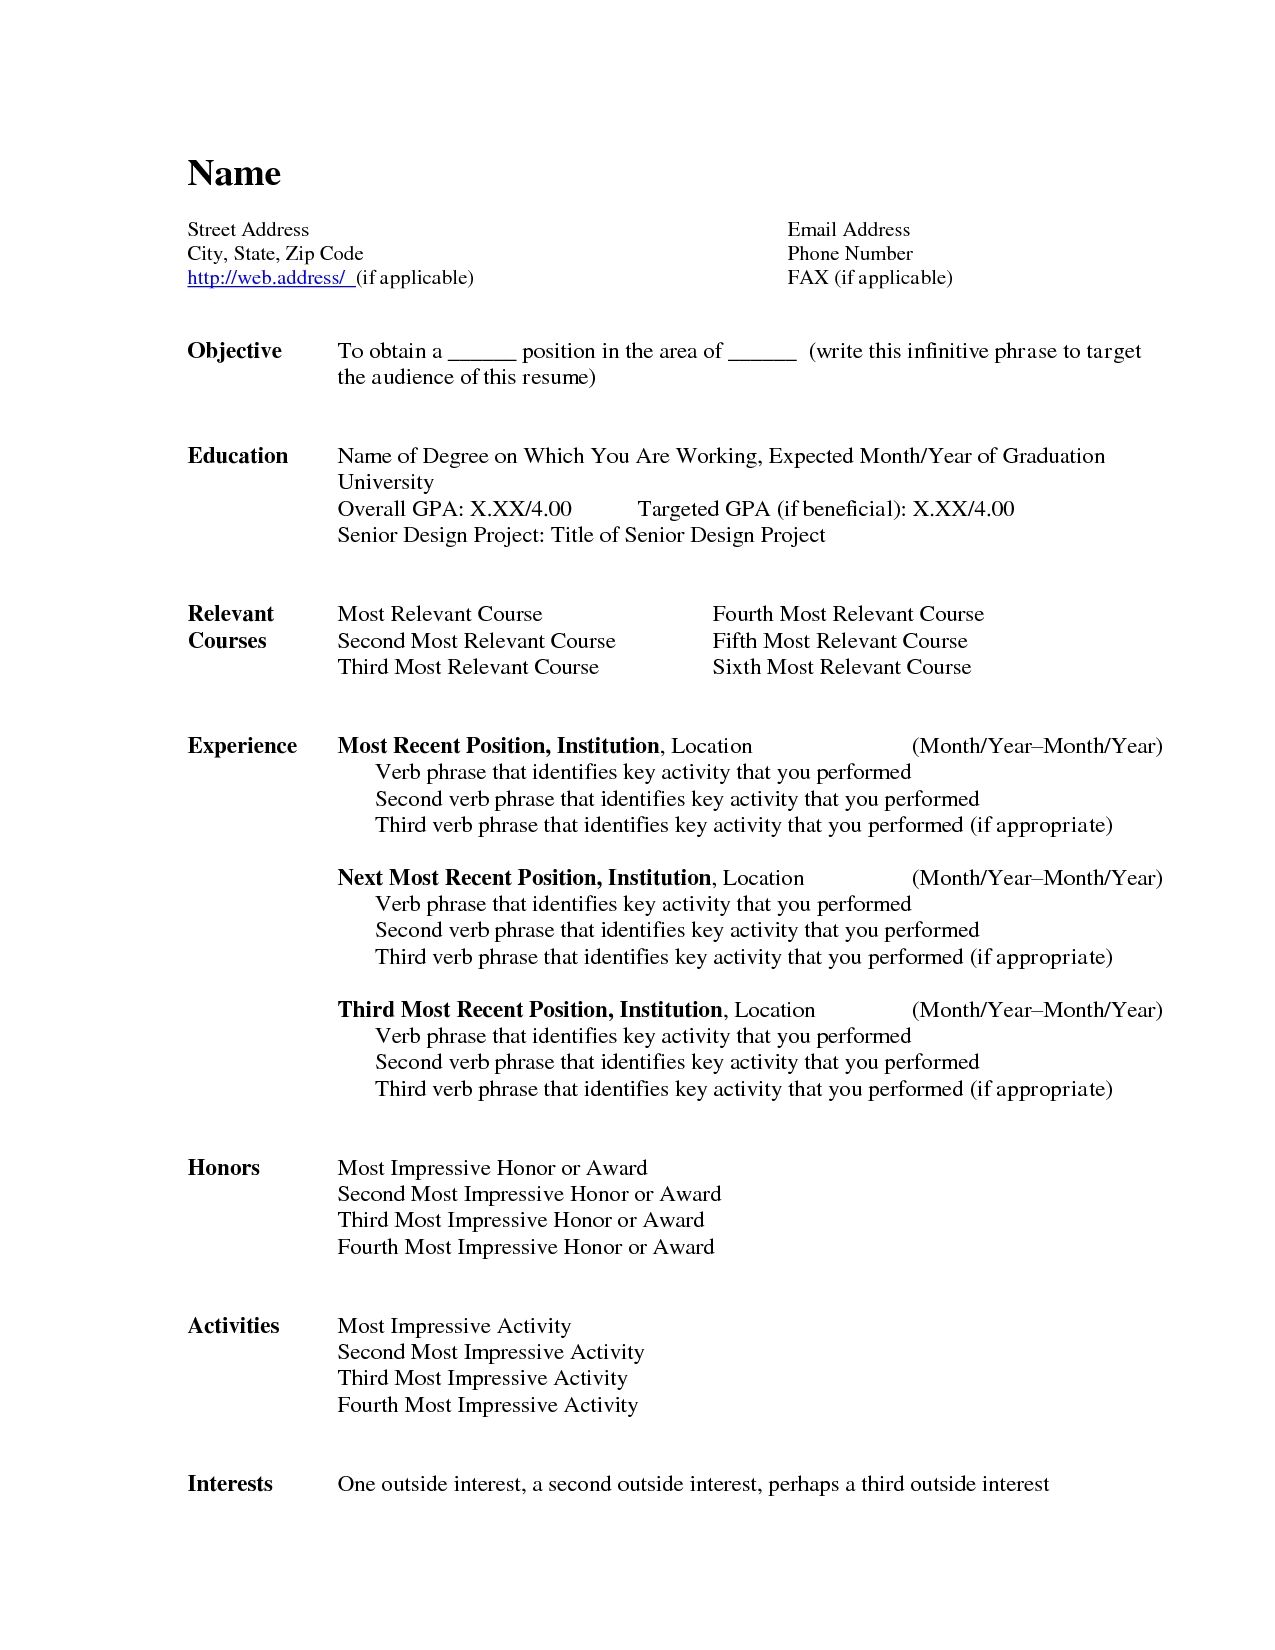 Photo Ms Word Resume Format Images The Ms Word Resume Format